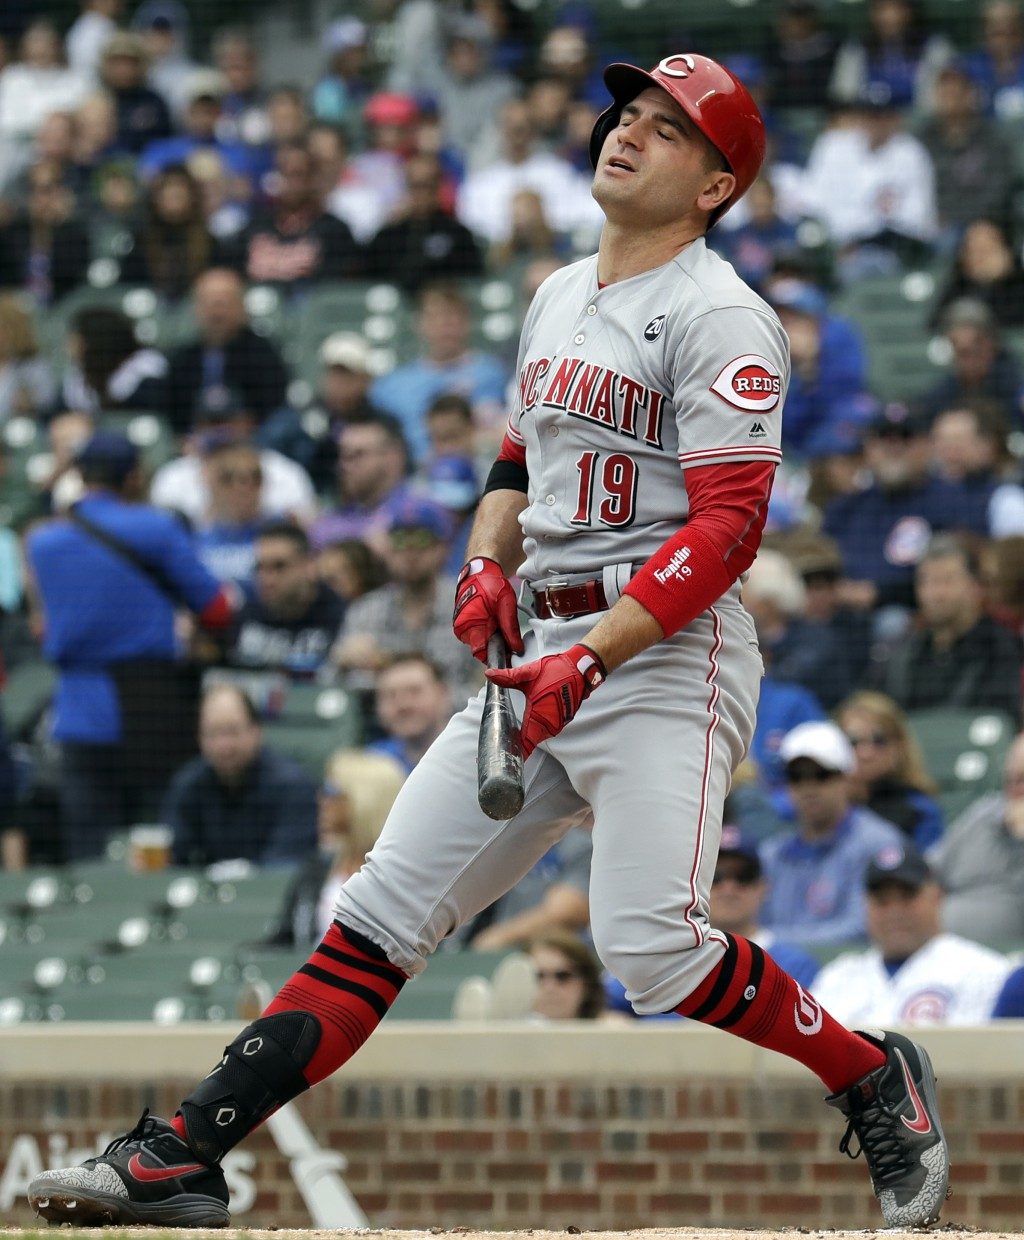 Cincinnati Reds' Joey Votto reacts after striking out swinging during the first inning of a baseball game against the Chicago Cubs, Friday, May 24, 20...